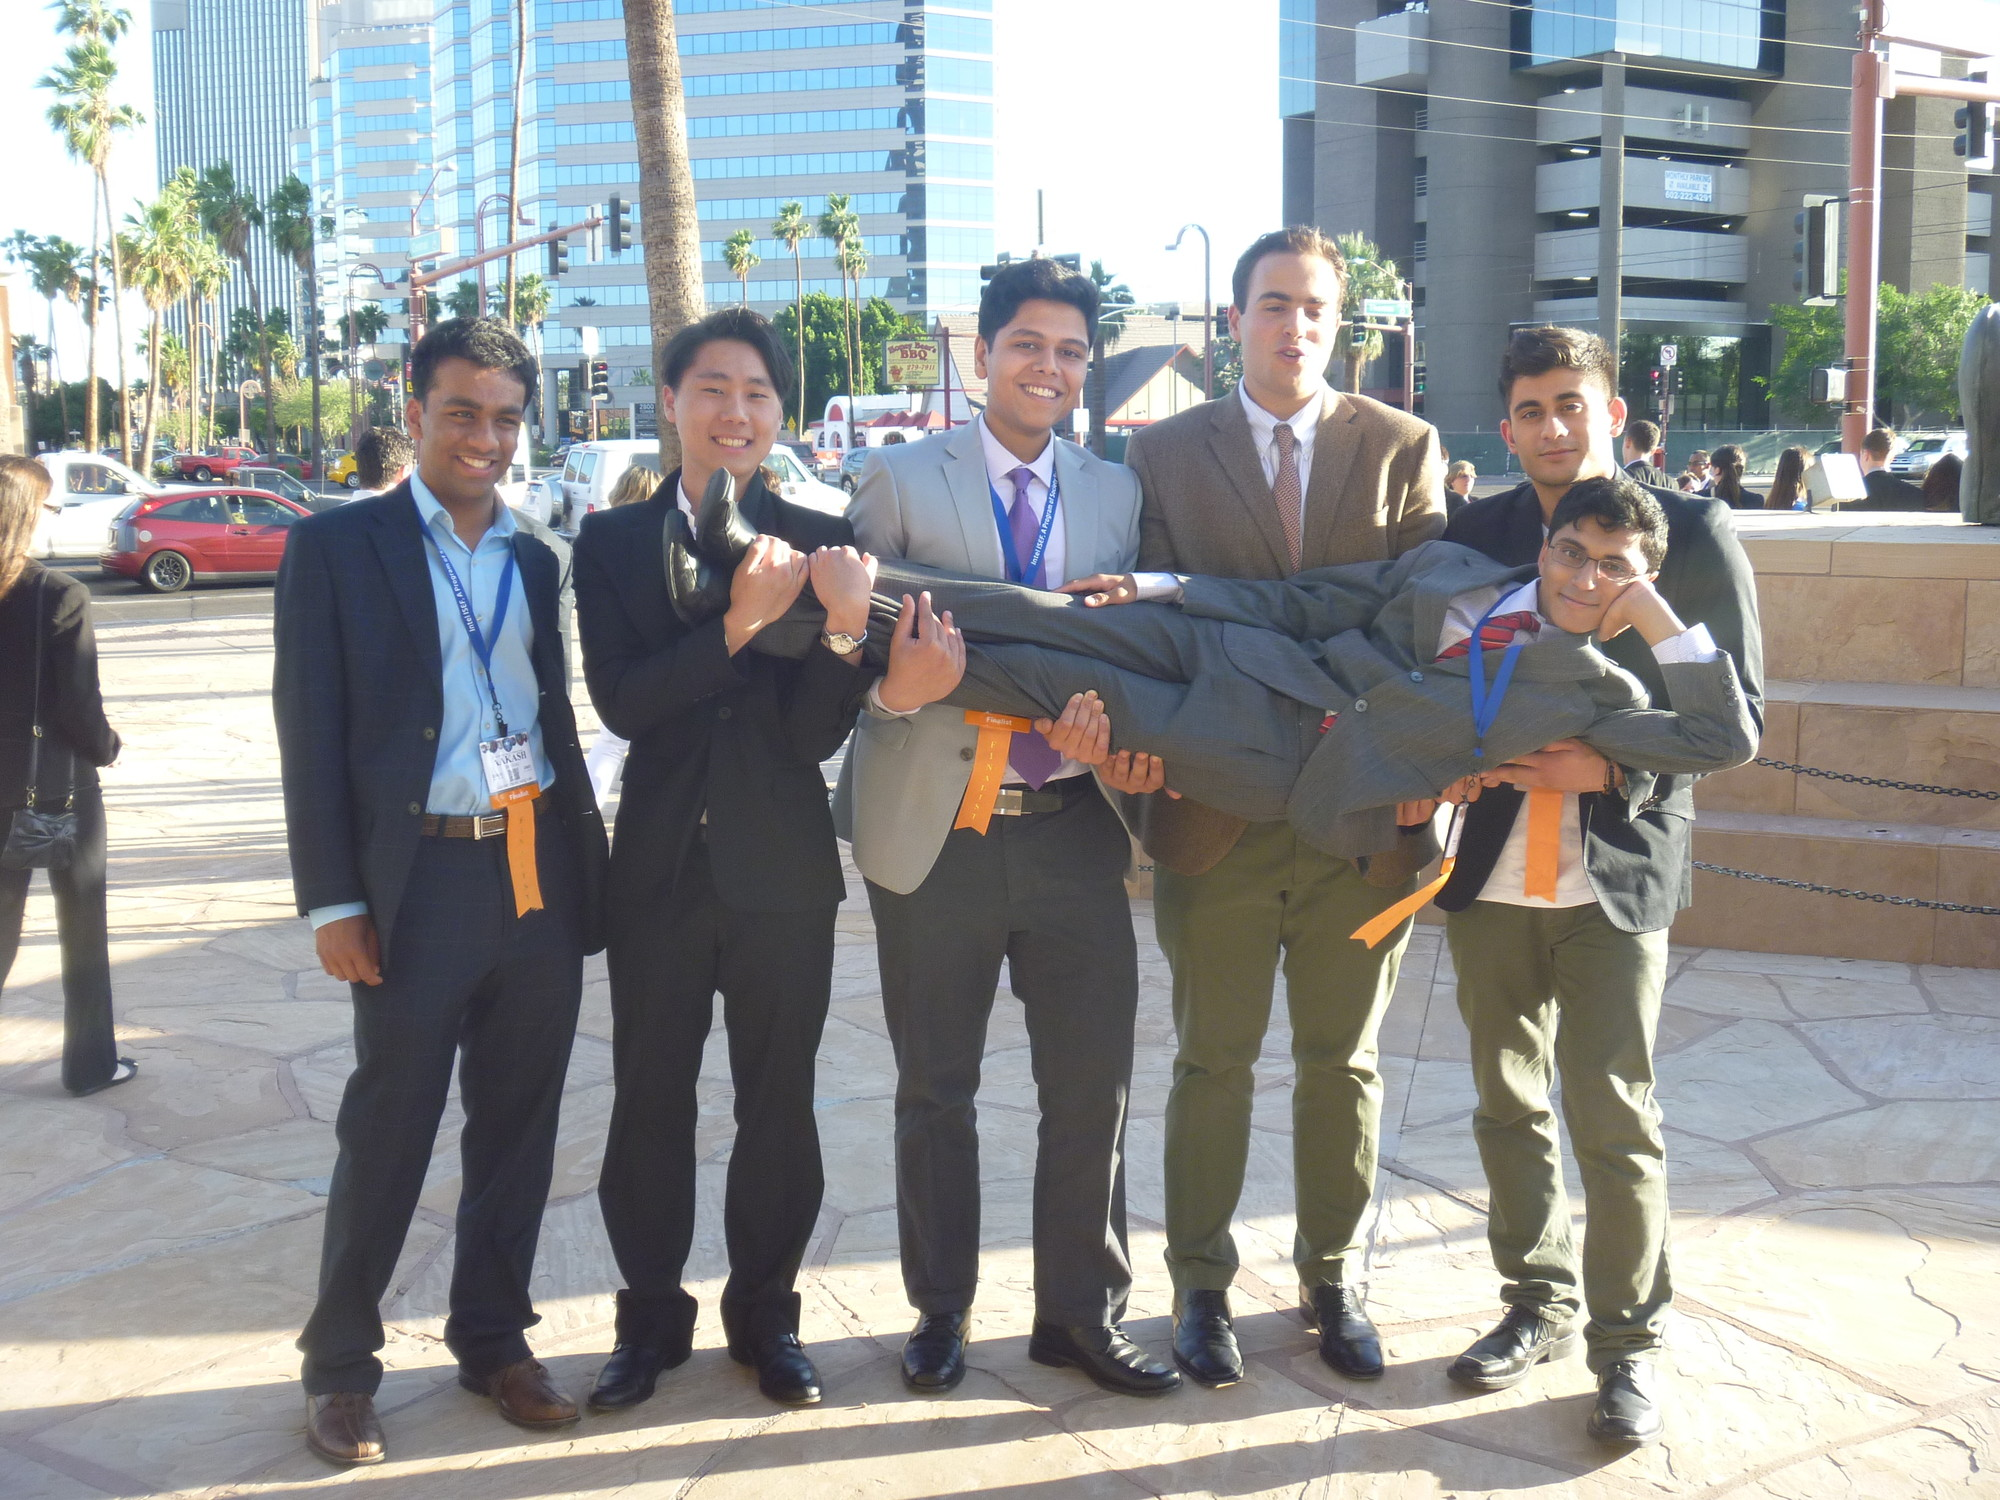 At the International Science and Engineering Fair in May in Phoenix, he was hoisted by his friends, from left, Aakash Jhaveri, Albert Kim, 2013 East Meadow High School graduate Shujat Khan, Benjamin Pleat and Shamoon Rizvi, another 2013 EMHS graduate.